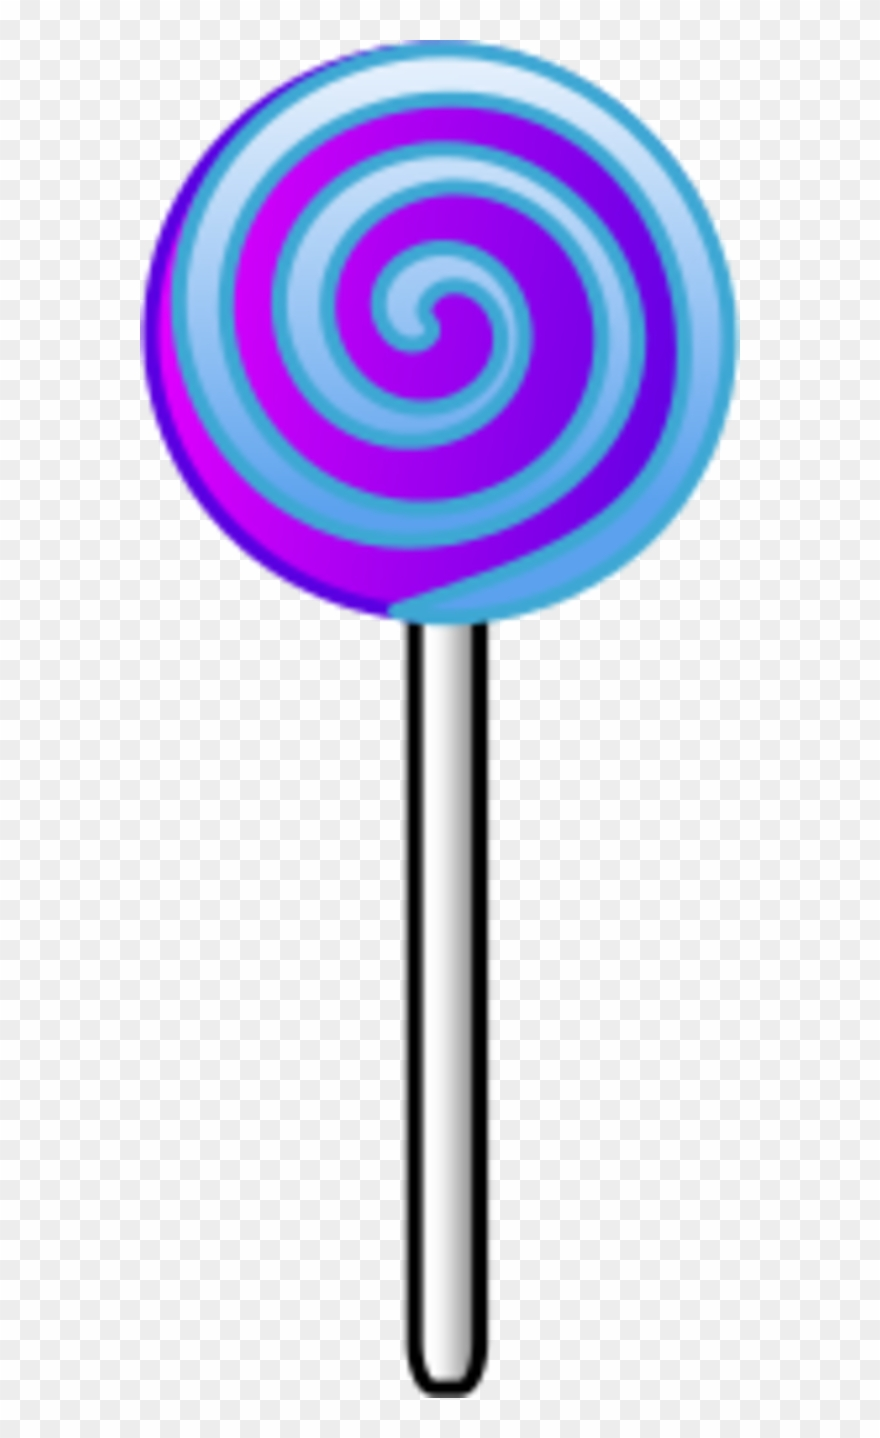 Office clipart free download clip art royalty free stock Office Clip Art Striped Lollipop Clipart Free Download ... clip art royalty free stock